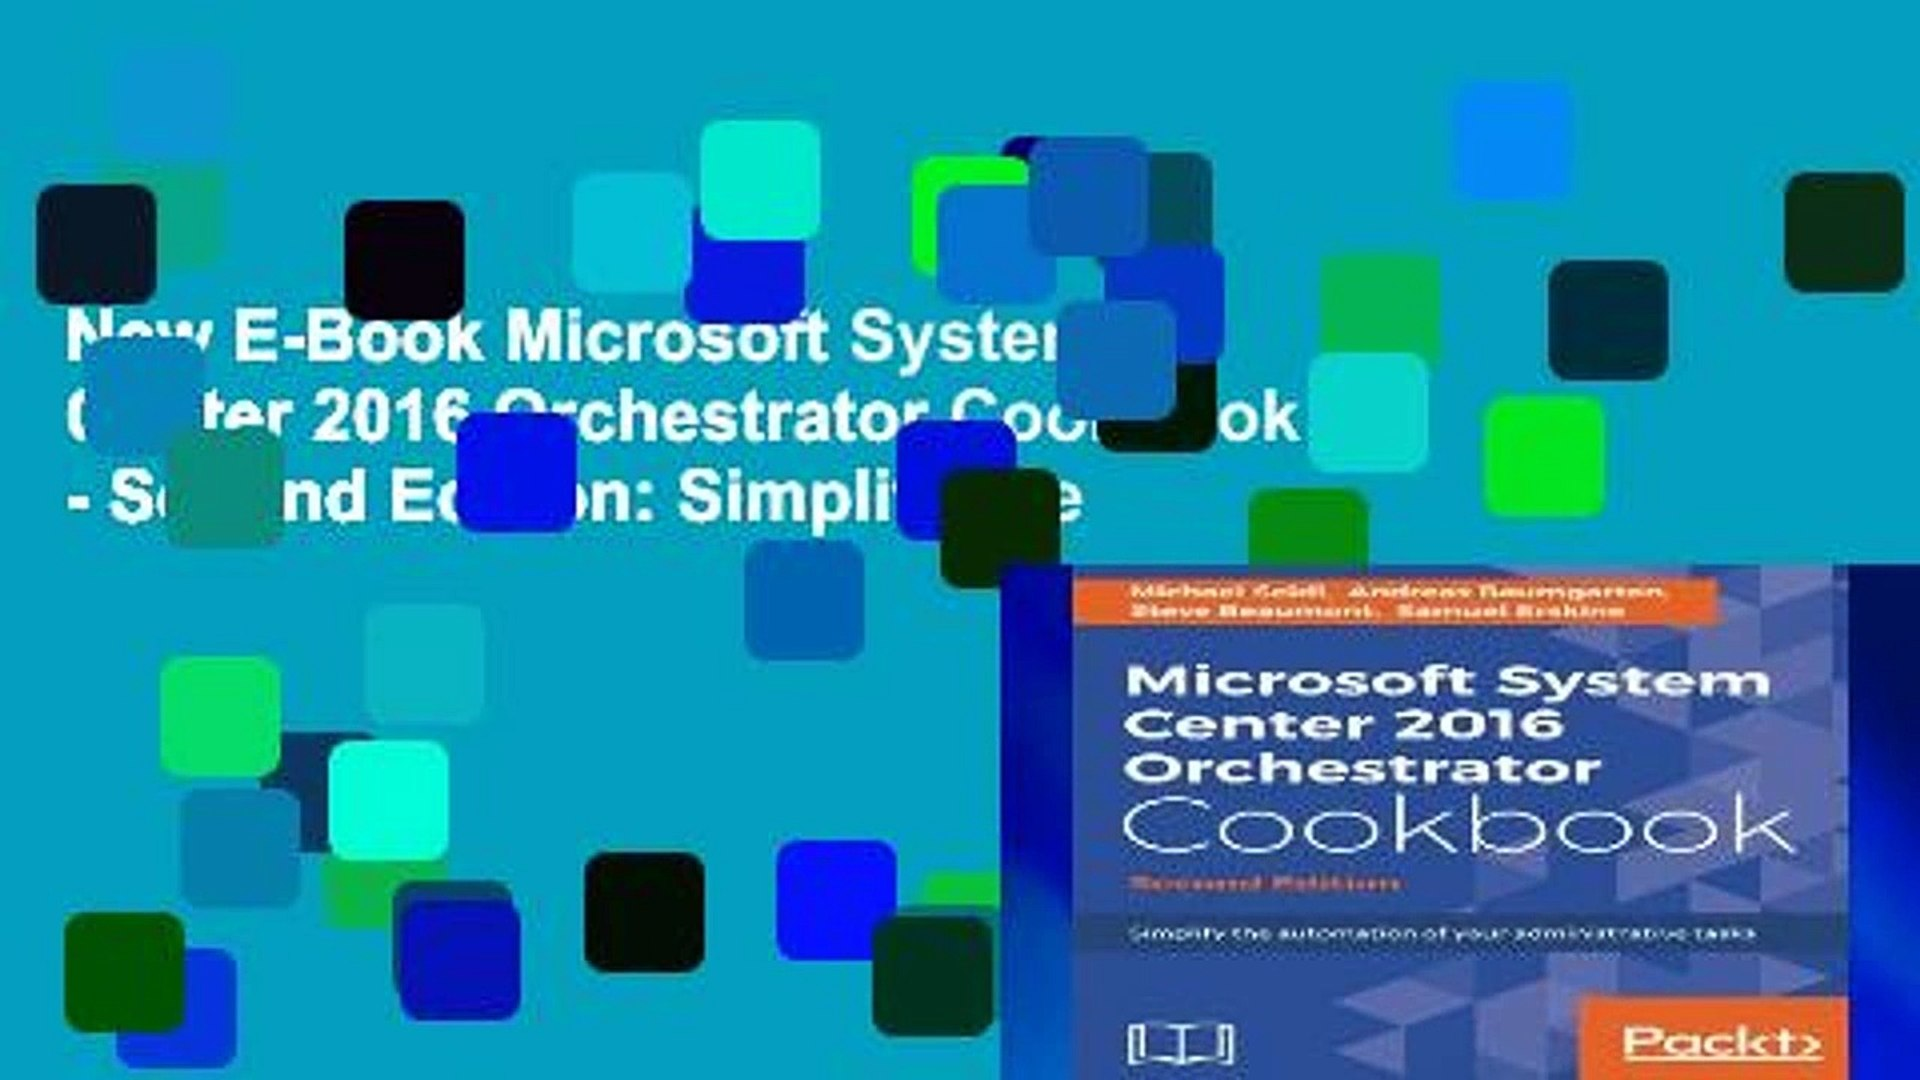 New E-Book Microsoft System Center 2016 Orchestrator Cookbook - Second  Edition: Simplify the